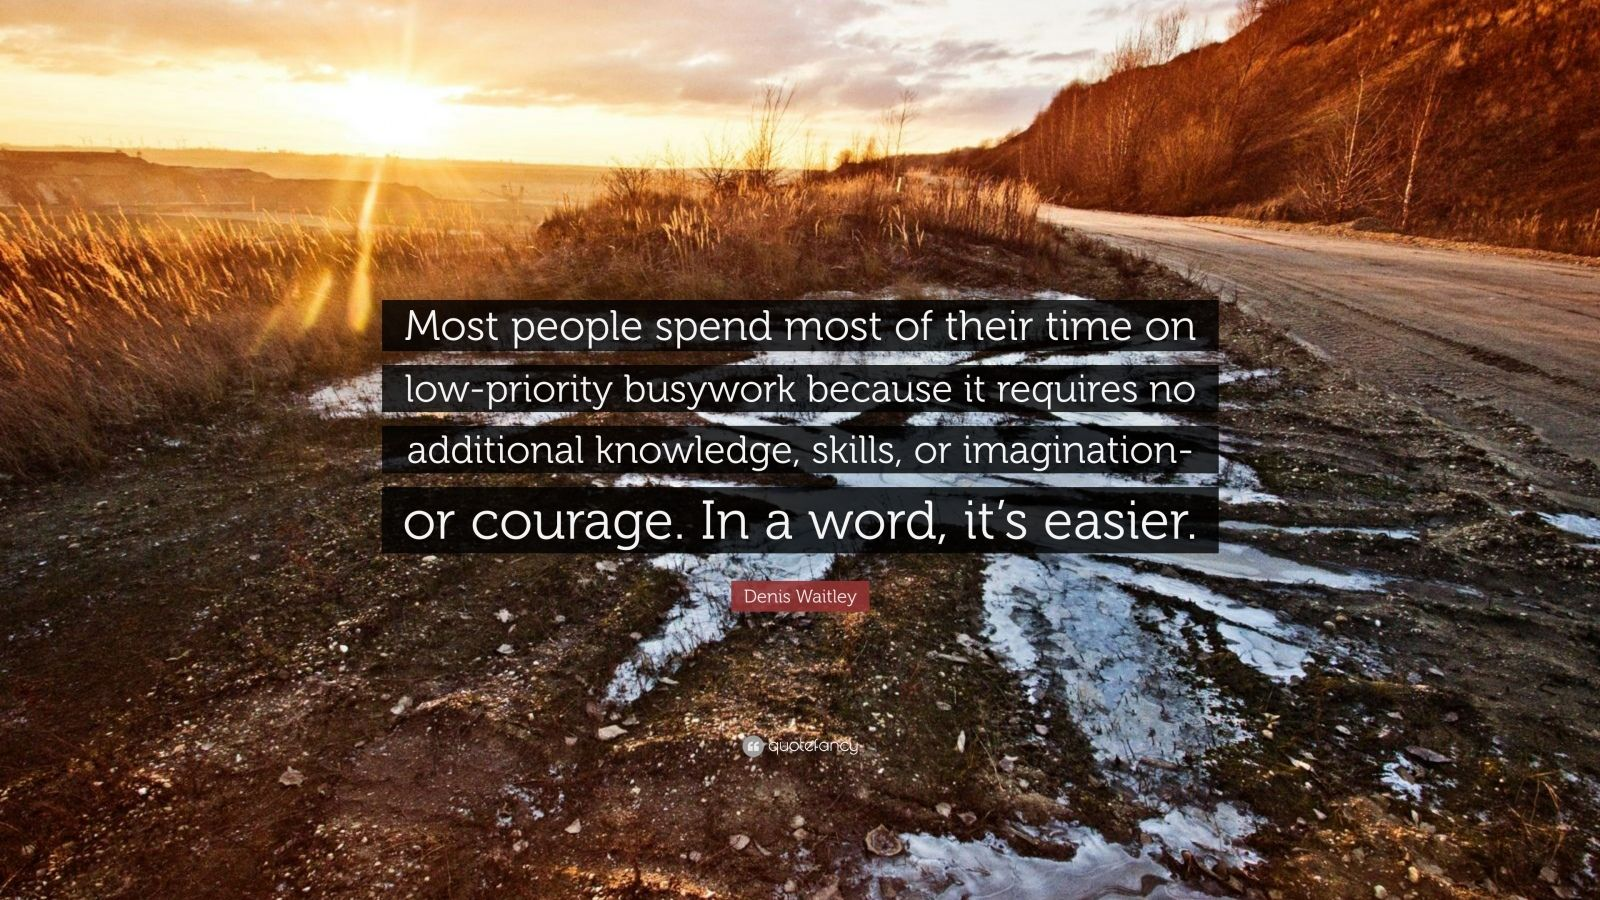 """Denis Waitley Quote: """"Most people spend most of their time on low-priority busywork because it requires no additional knowledge, skills, or imagination-or courage. In a word, it's easier."""""""